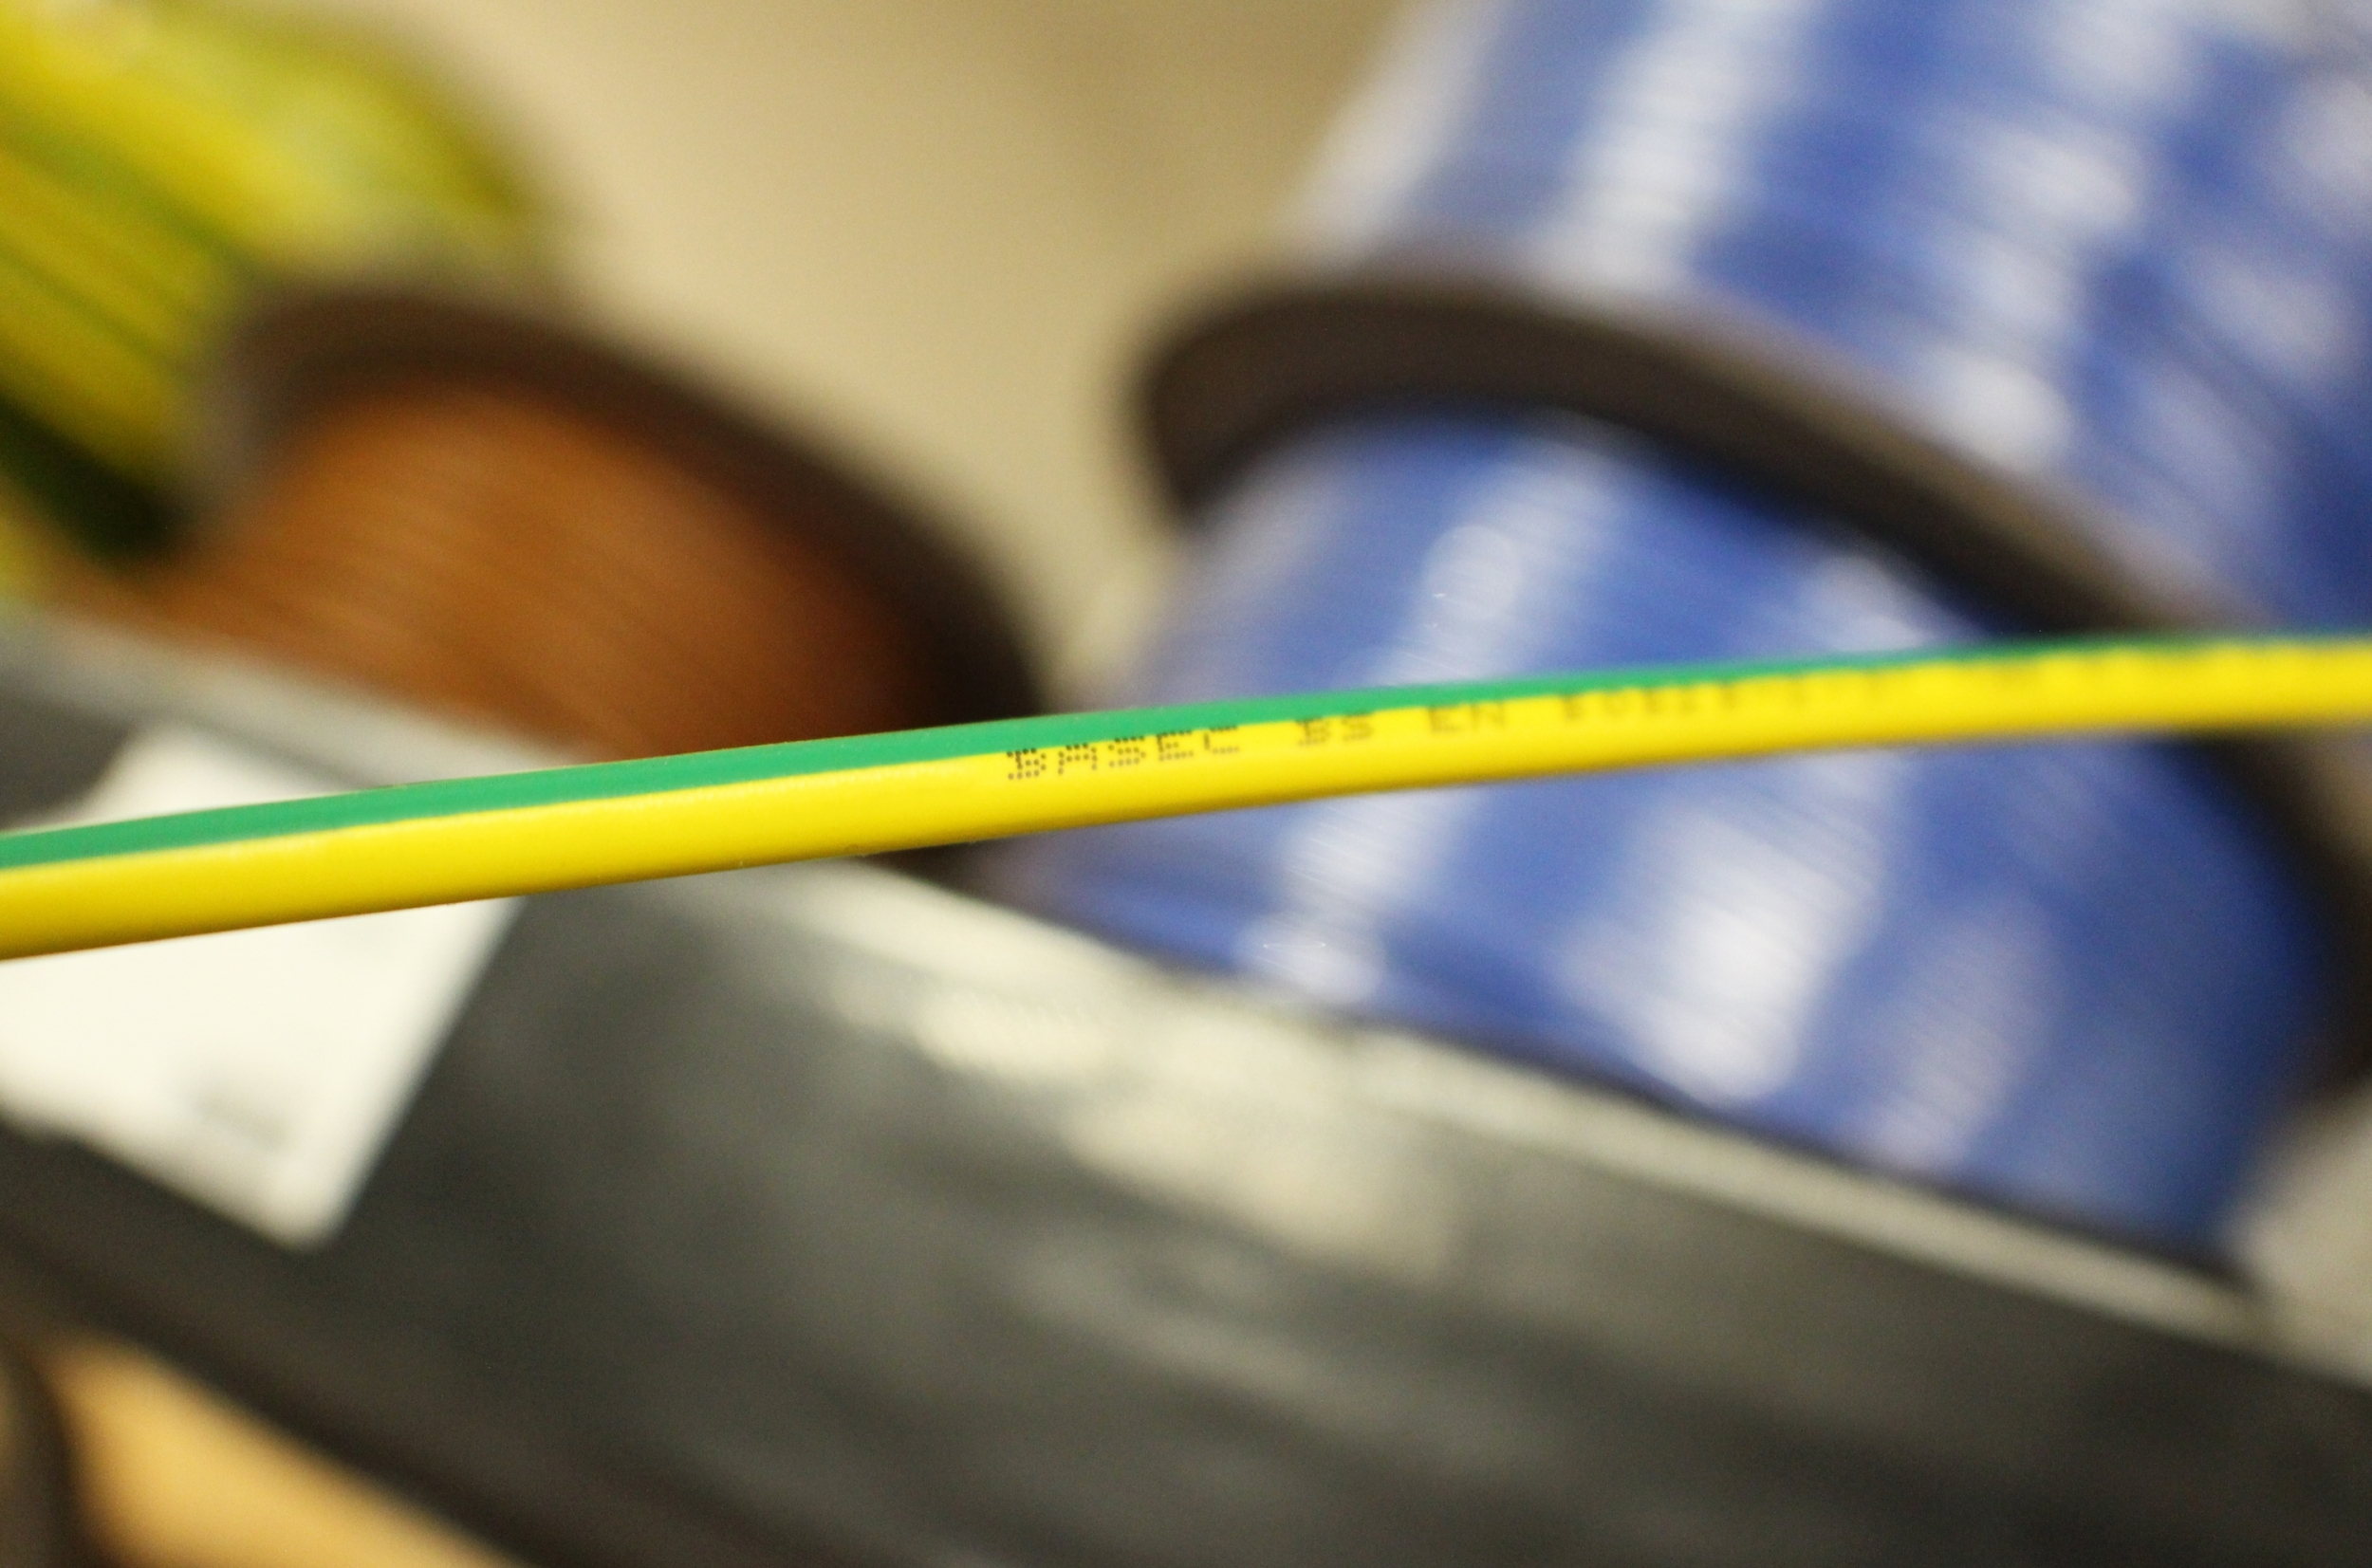 Stockist-cable-image.jpg